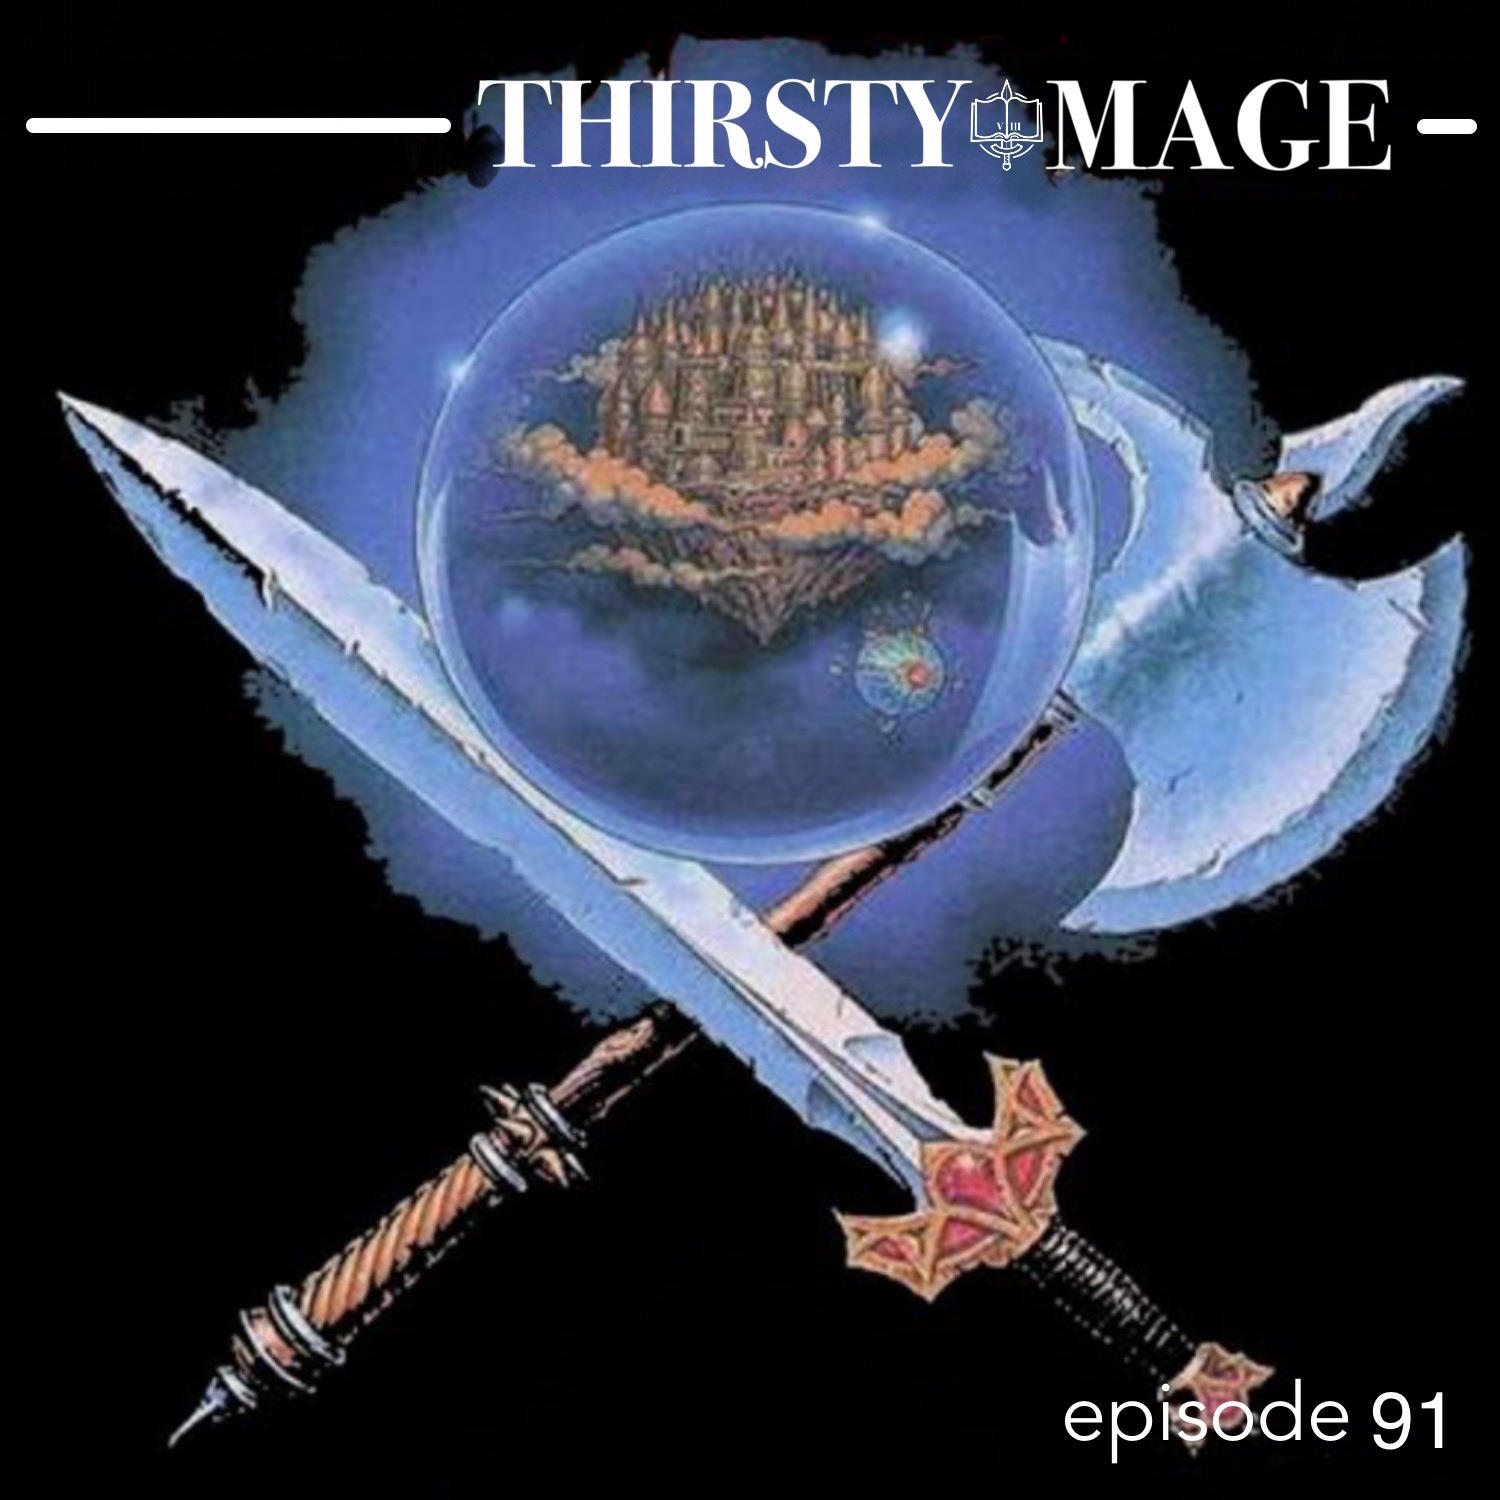 Classic Thirsty Mage – The Final Fantasy Episode